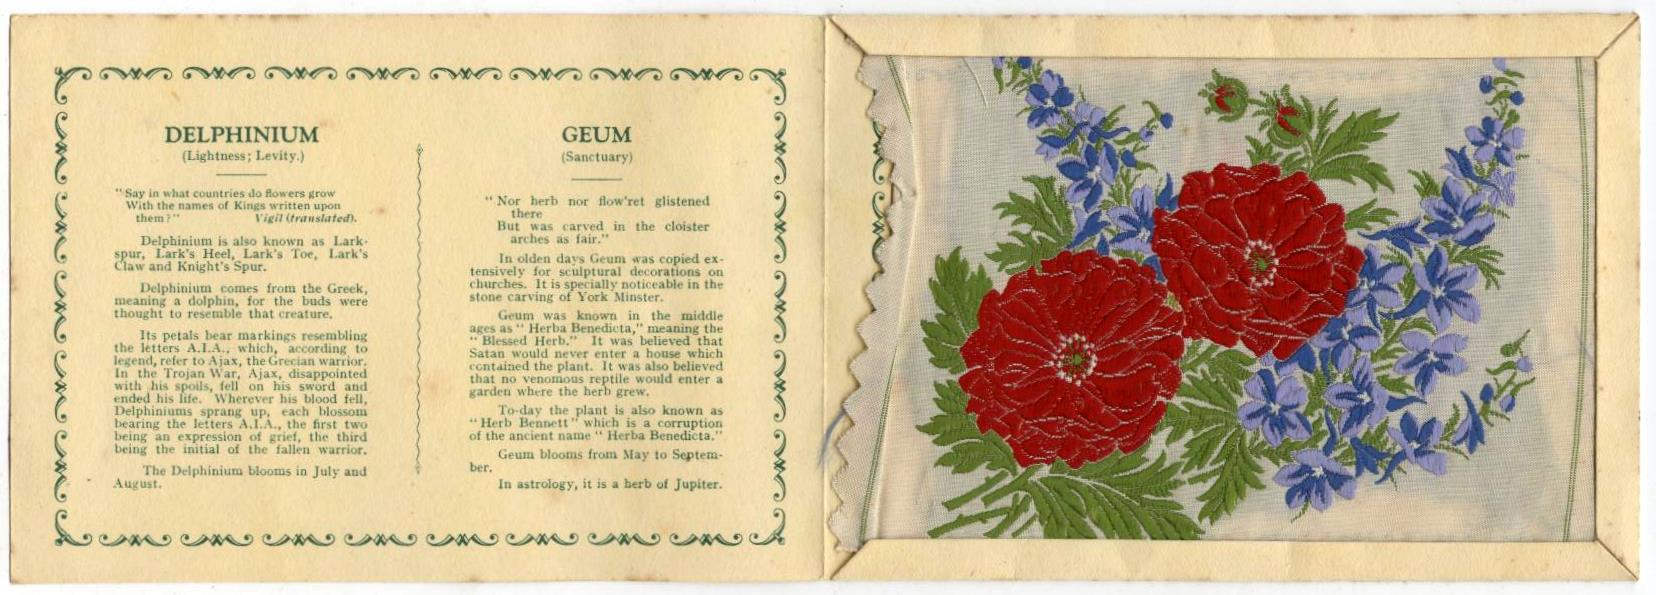 Vintage Kensitas Flowers Postcard Silk Delphinium Geum 1933 Series 1